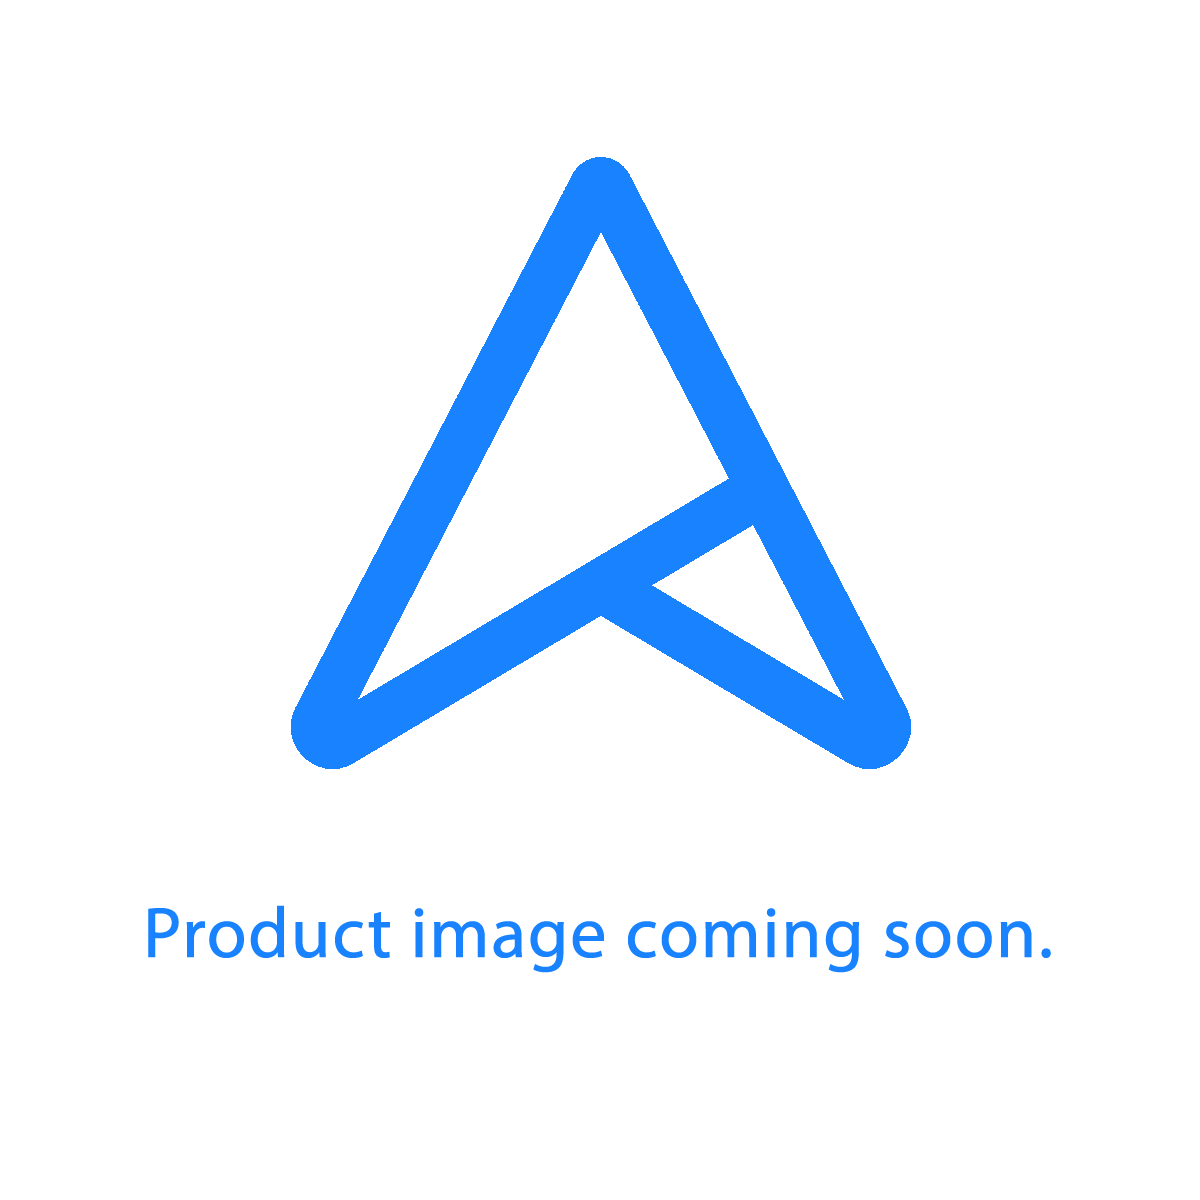 ASUS Premium Care - Notebook International Warranty (1 Year Standard + 2 Years Extension)